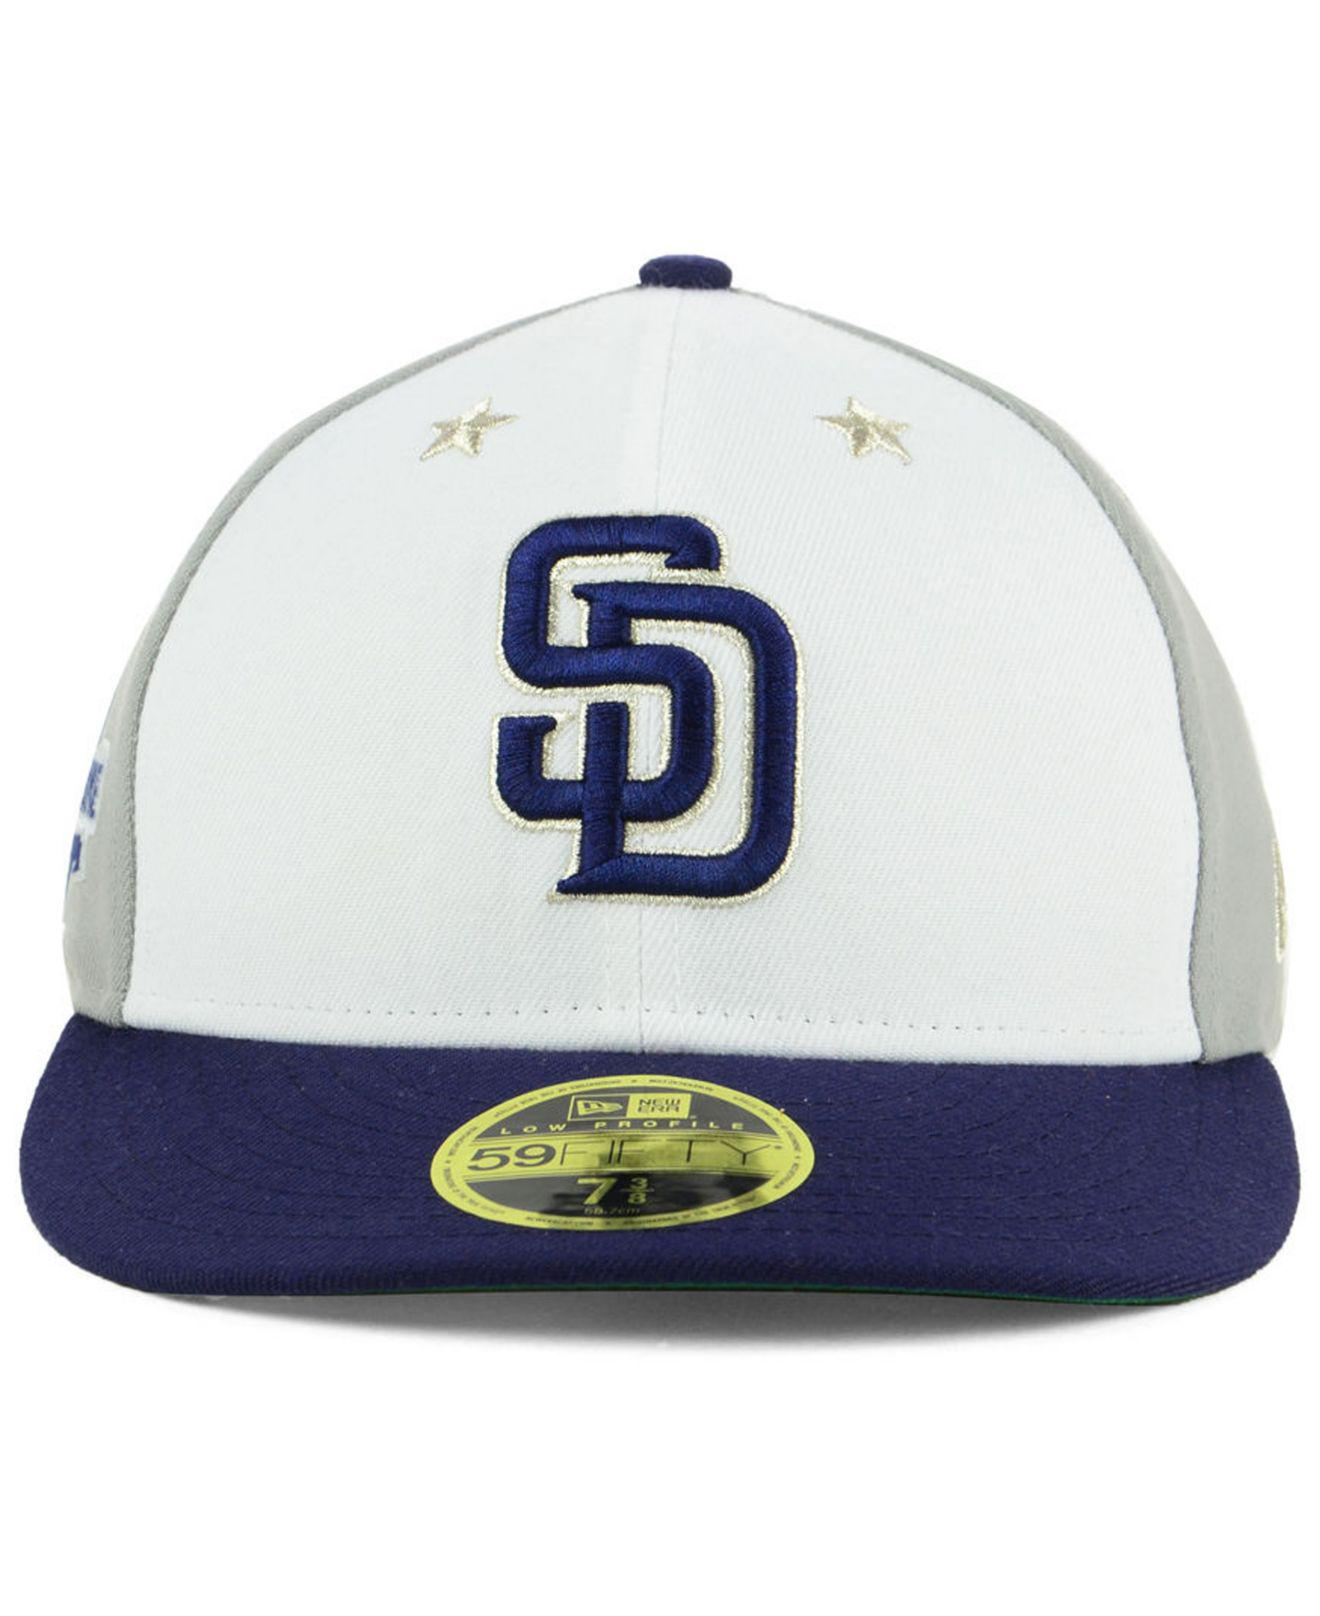 Lyst - KTZ San Diego Padres All Star Game Patch Low Profile 59fifty Fitted  Cap 2018 in Blue for Men f2dd28713a6b